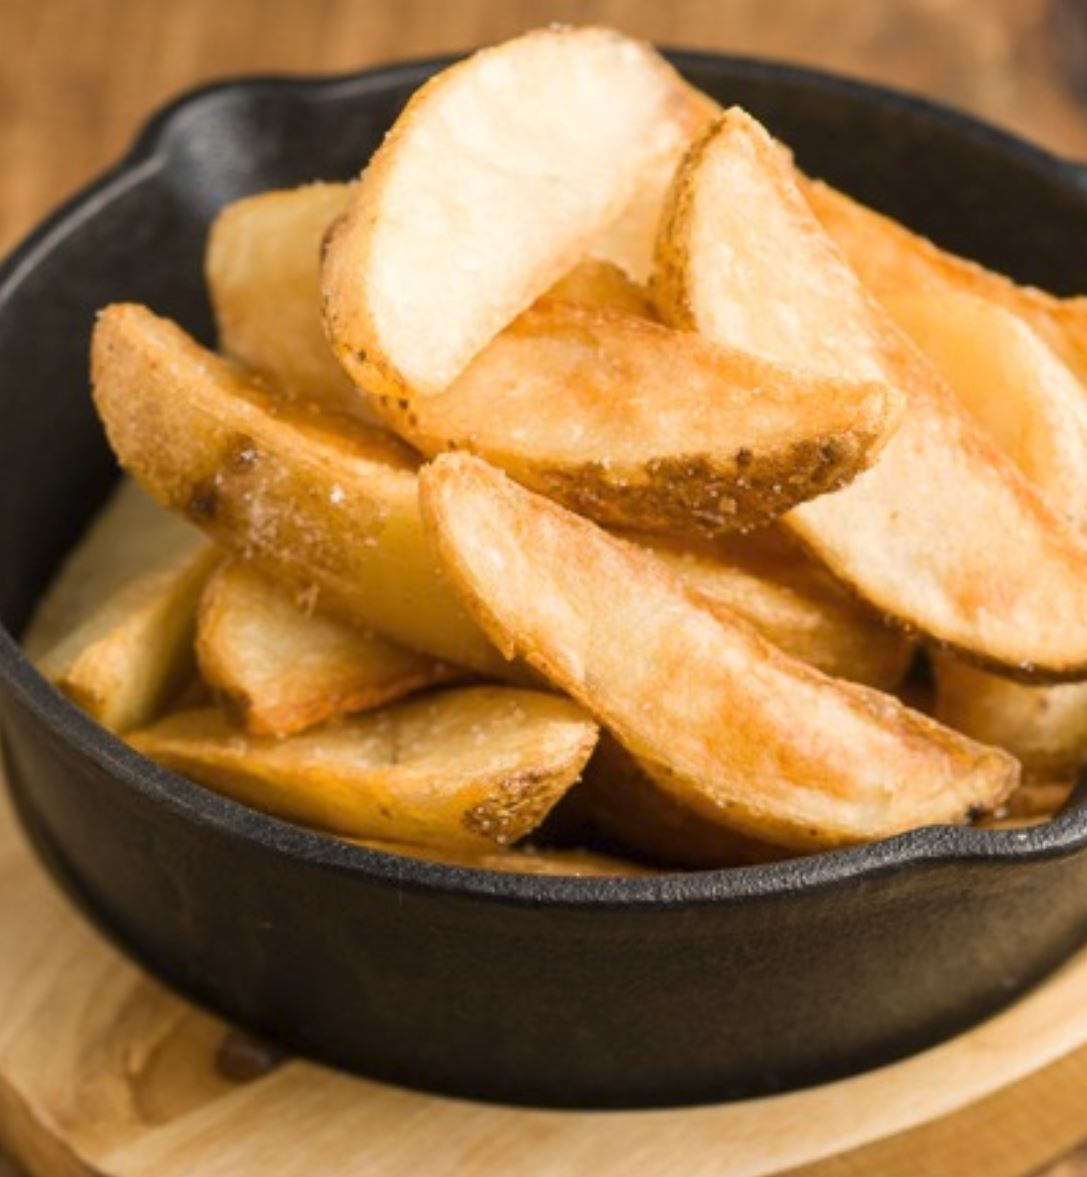 POTATO WEDGE + SALT